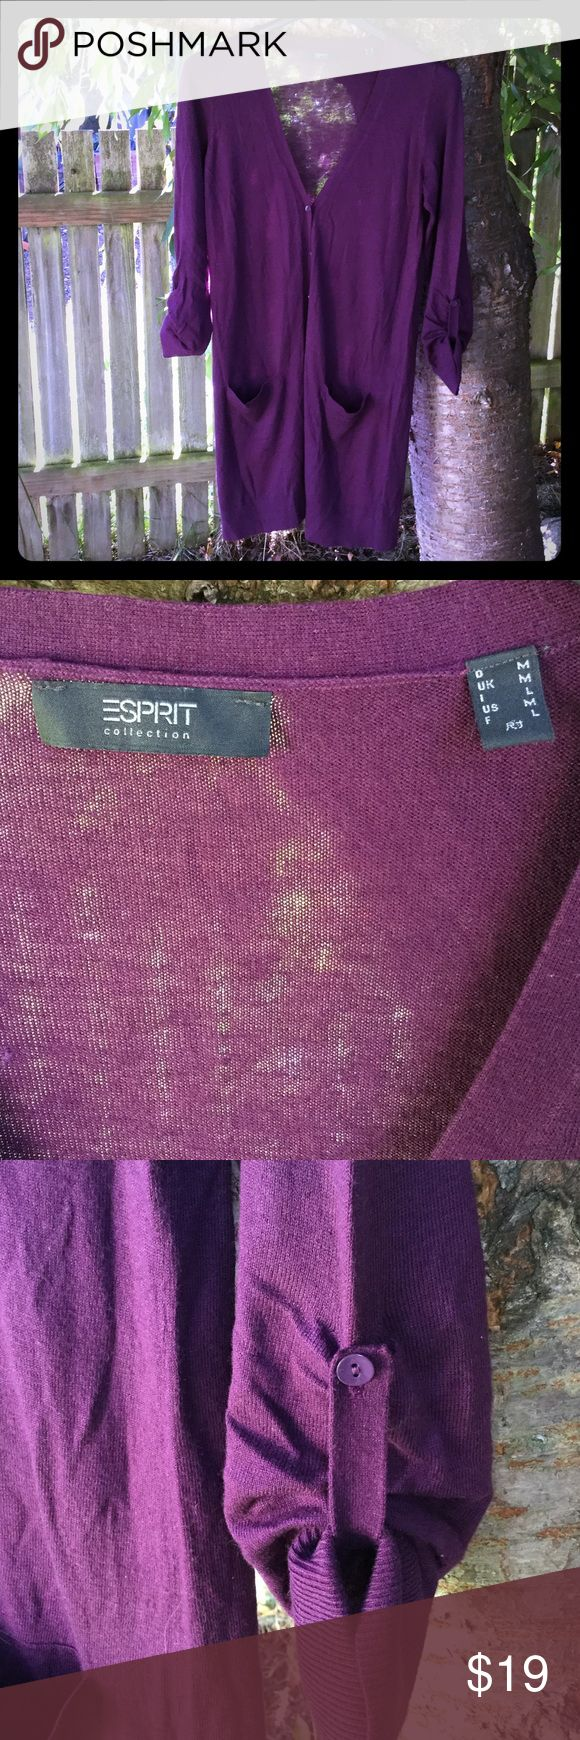 Long cardigan prune/violet ESPRIT size M Stunning color! Stunning style! Great with leggings, skirts, anything. Soft fabric, with pockets and roll-up for sleeves. Great condition! Esprit Sweaters Cardigans